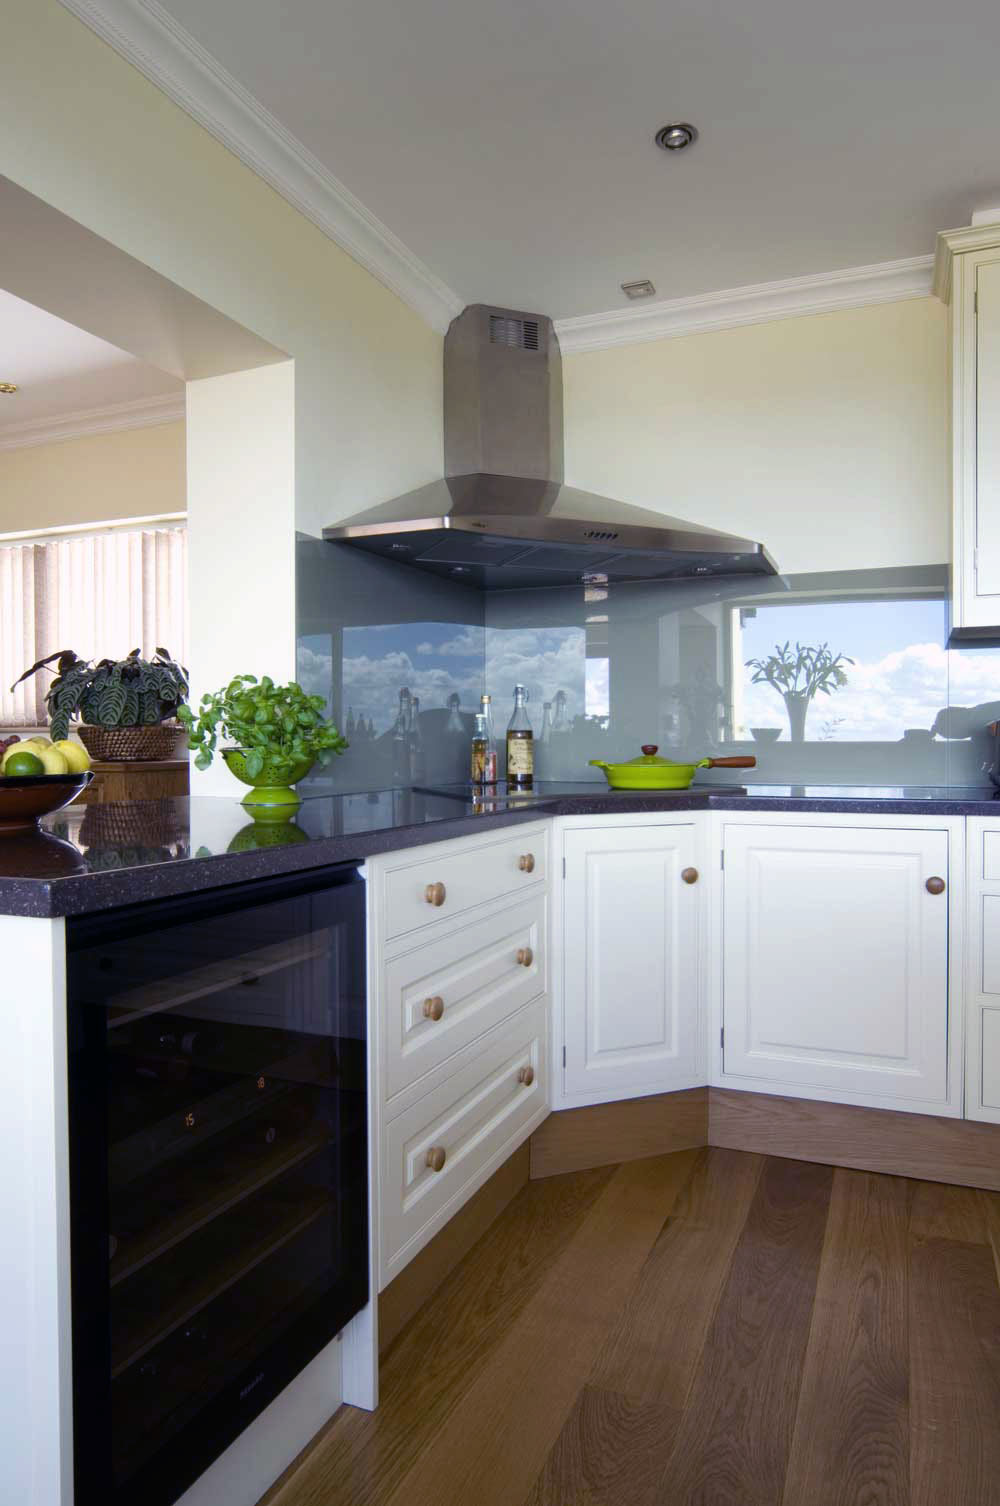 Bespoke countryside kitchen - Corner View